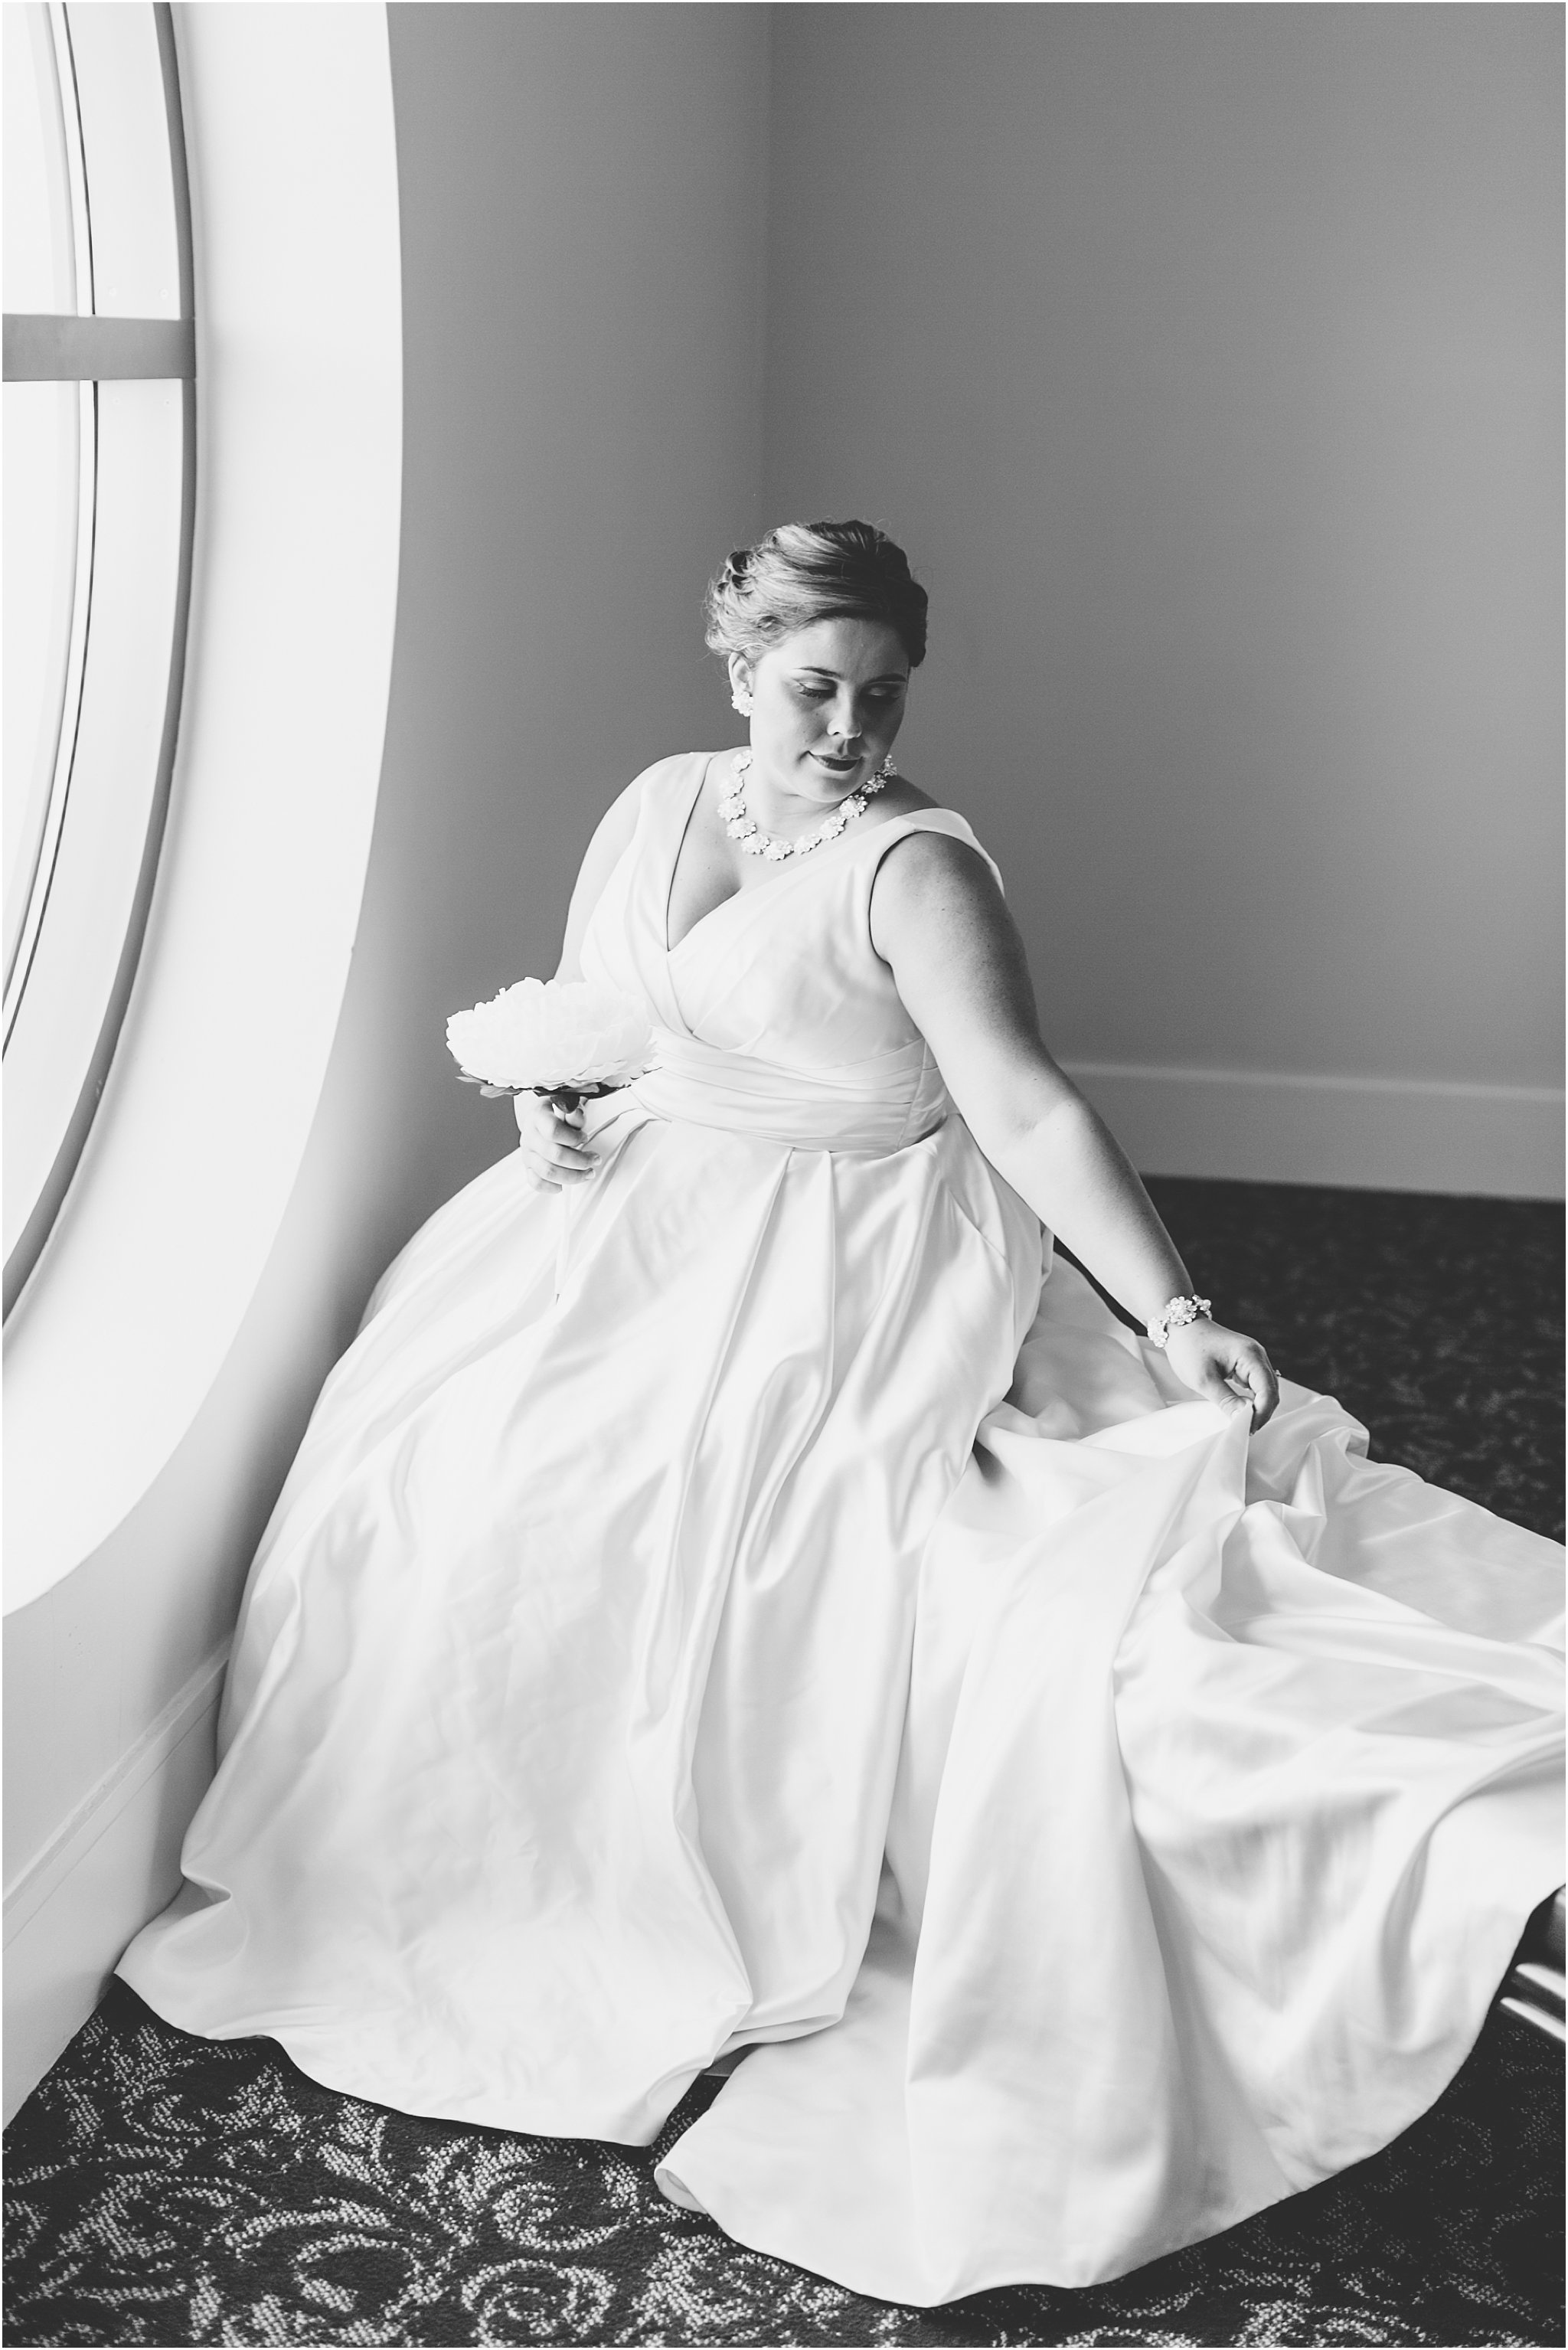 va_jessica_ryan_photography_virginia_wedding_norfolk_harrison_opera_house_norfolk_arts_district_portraits_3778